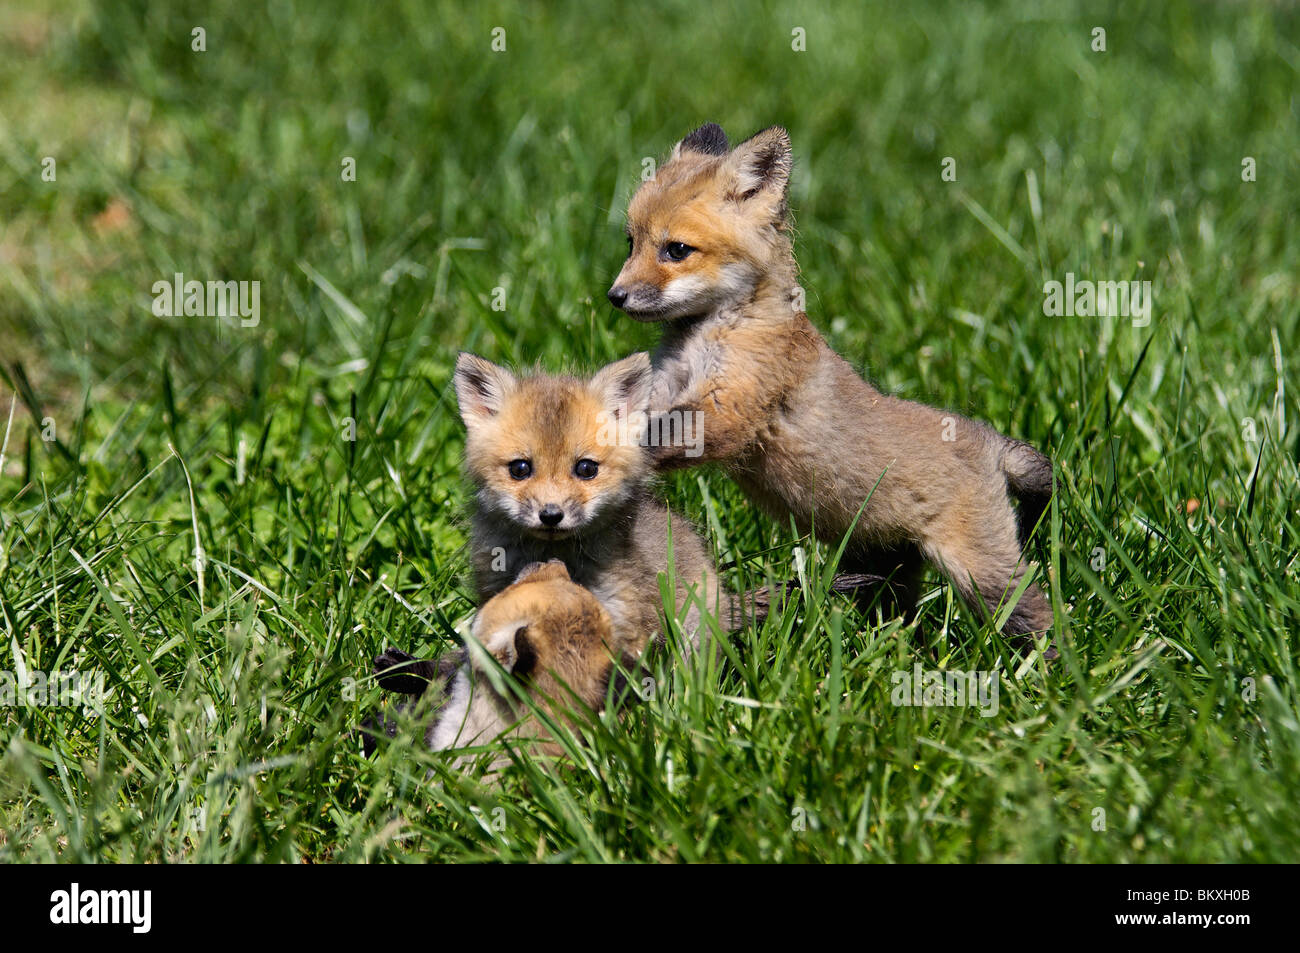 how to get a baby fox